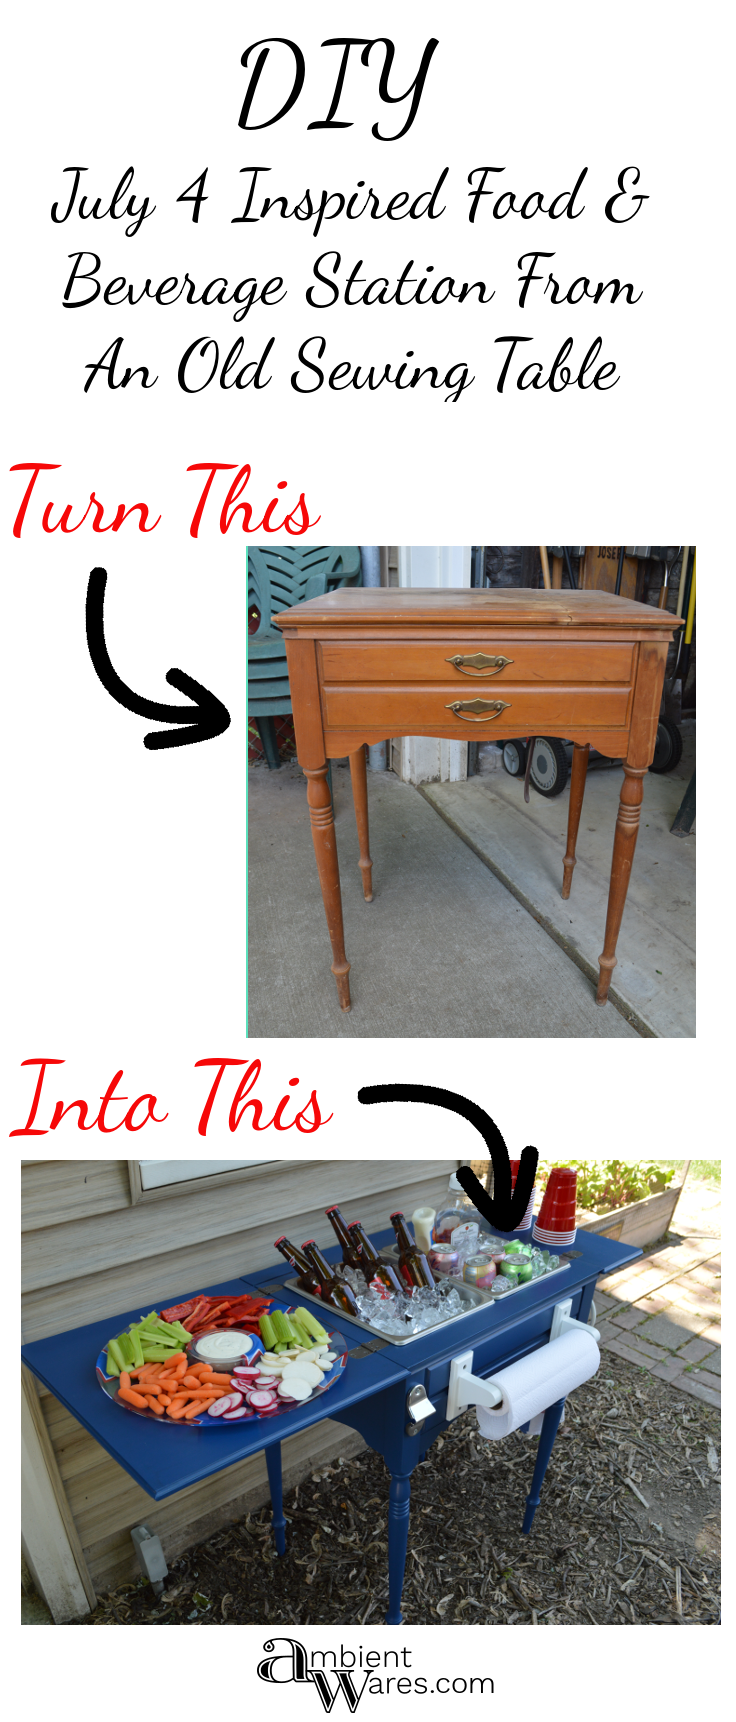 16 Upcycled Furniture Ideas To Give Old Furnitures New Lives